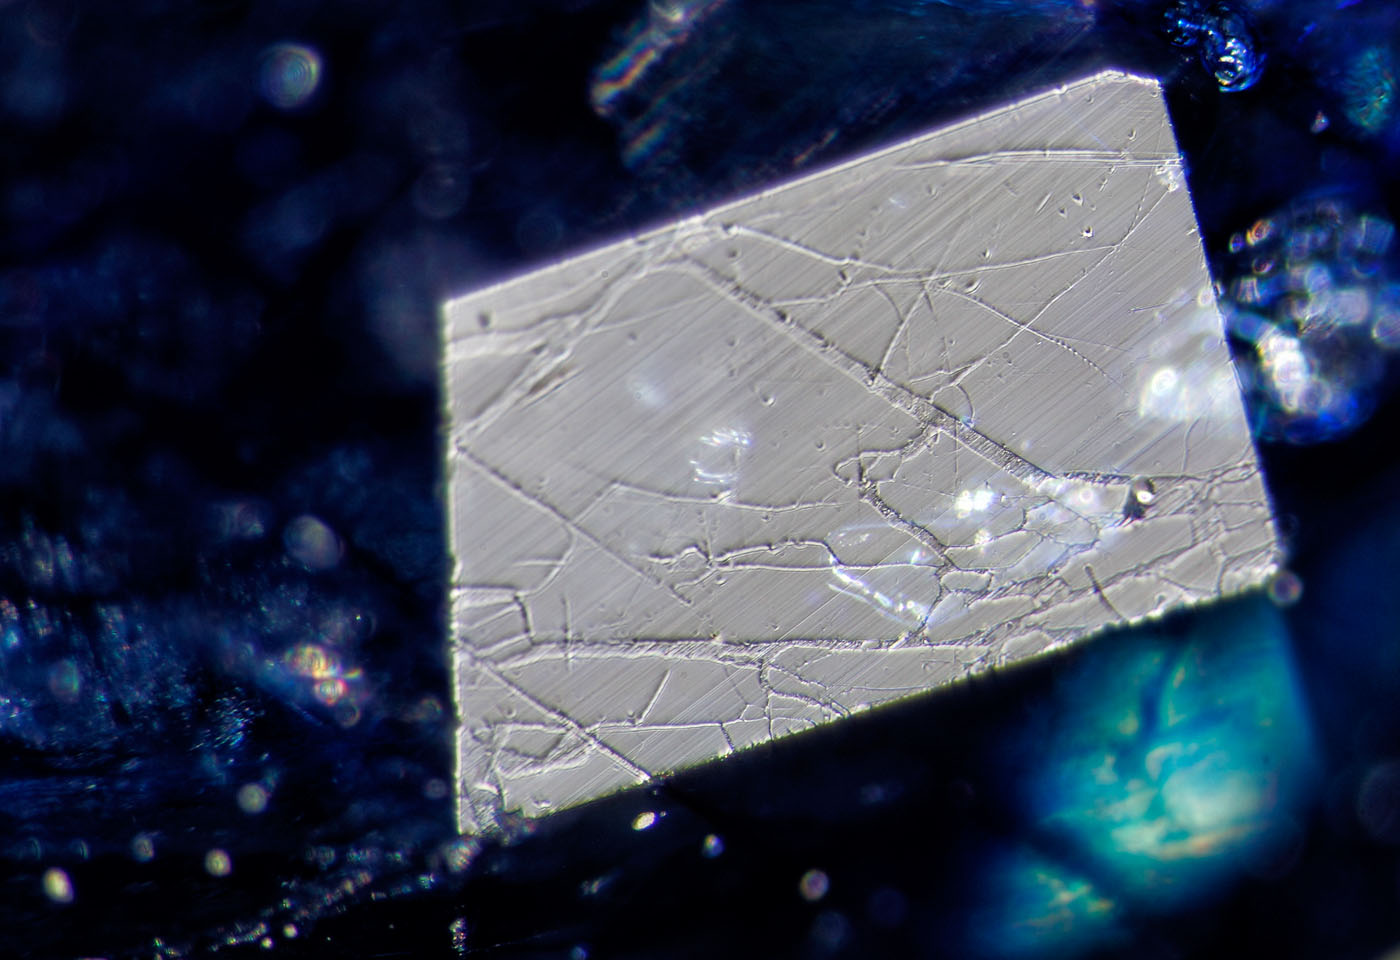 Figure 10. A small facet viewed in reflected light reveals a network of fissures filled with glass. The low hardness of the glass shows serious undercutting compared with the surrounding sapphire. Surface-incident fiber-optic illumination. (Photo: Wimon Manorotkul, Lotus Gemology).